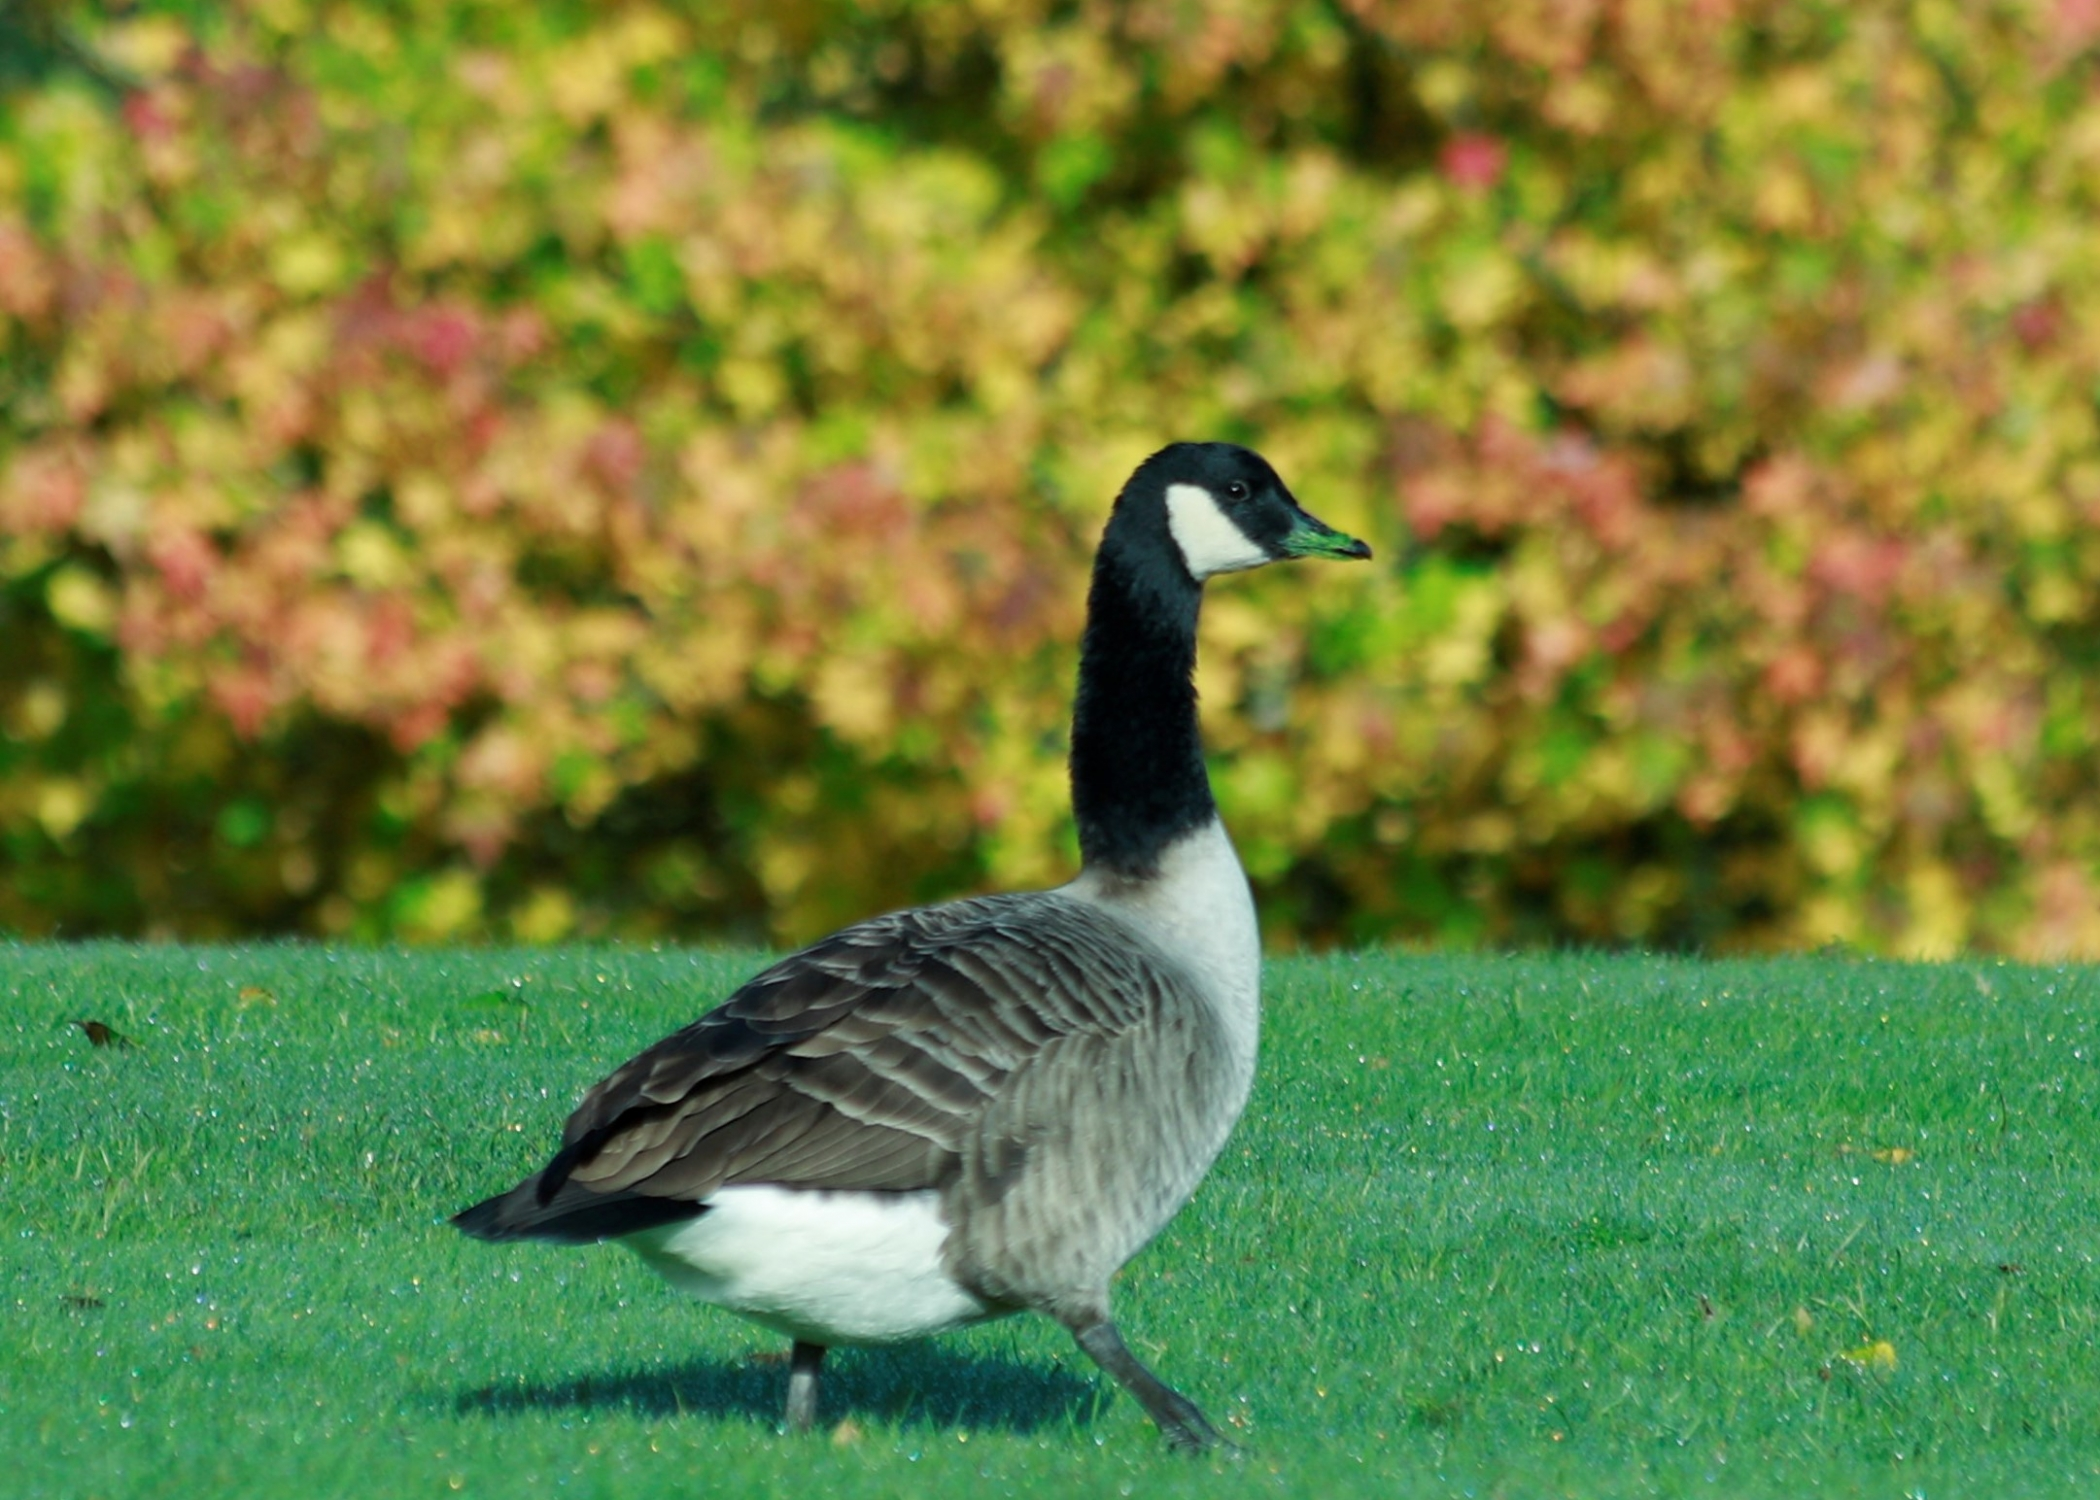 Canadian goose, black neck, white chest and dark body walking on grass